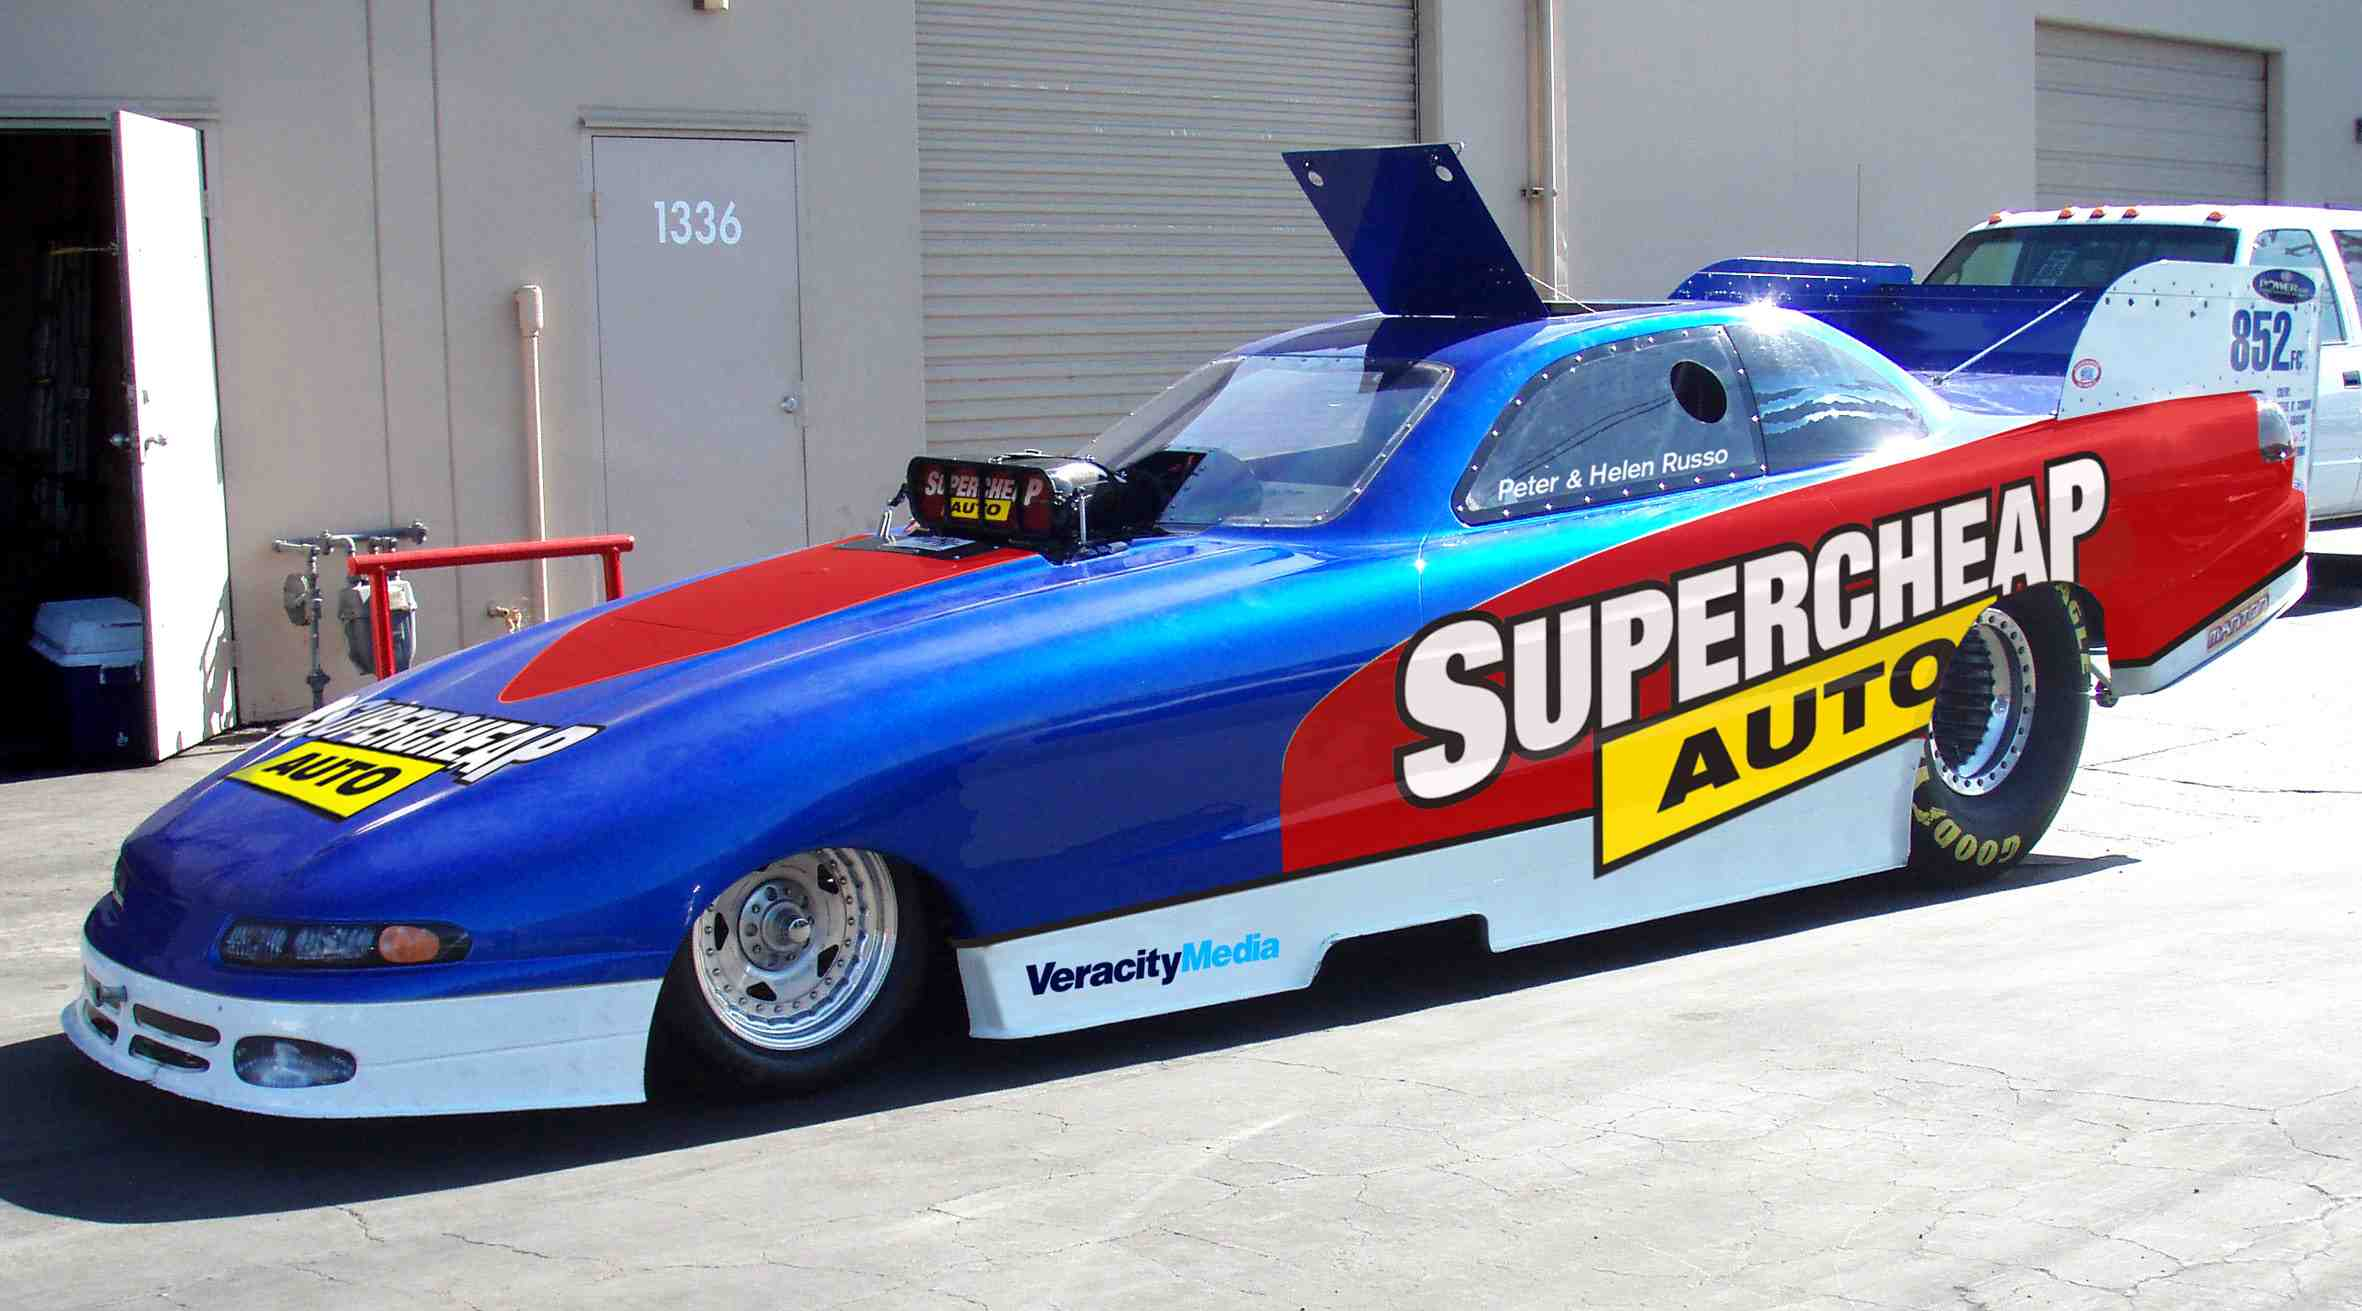 Russo waits to debut new Funny Car sponsor